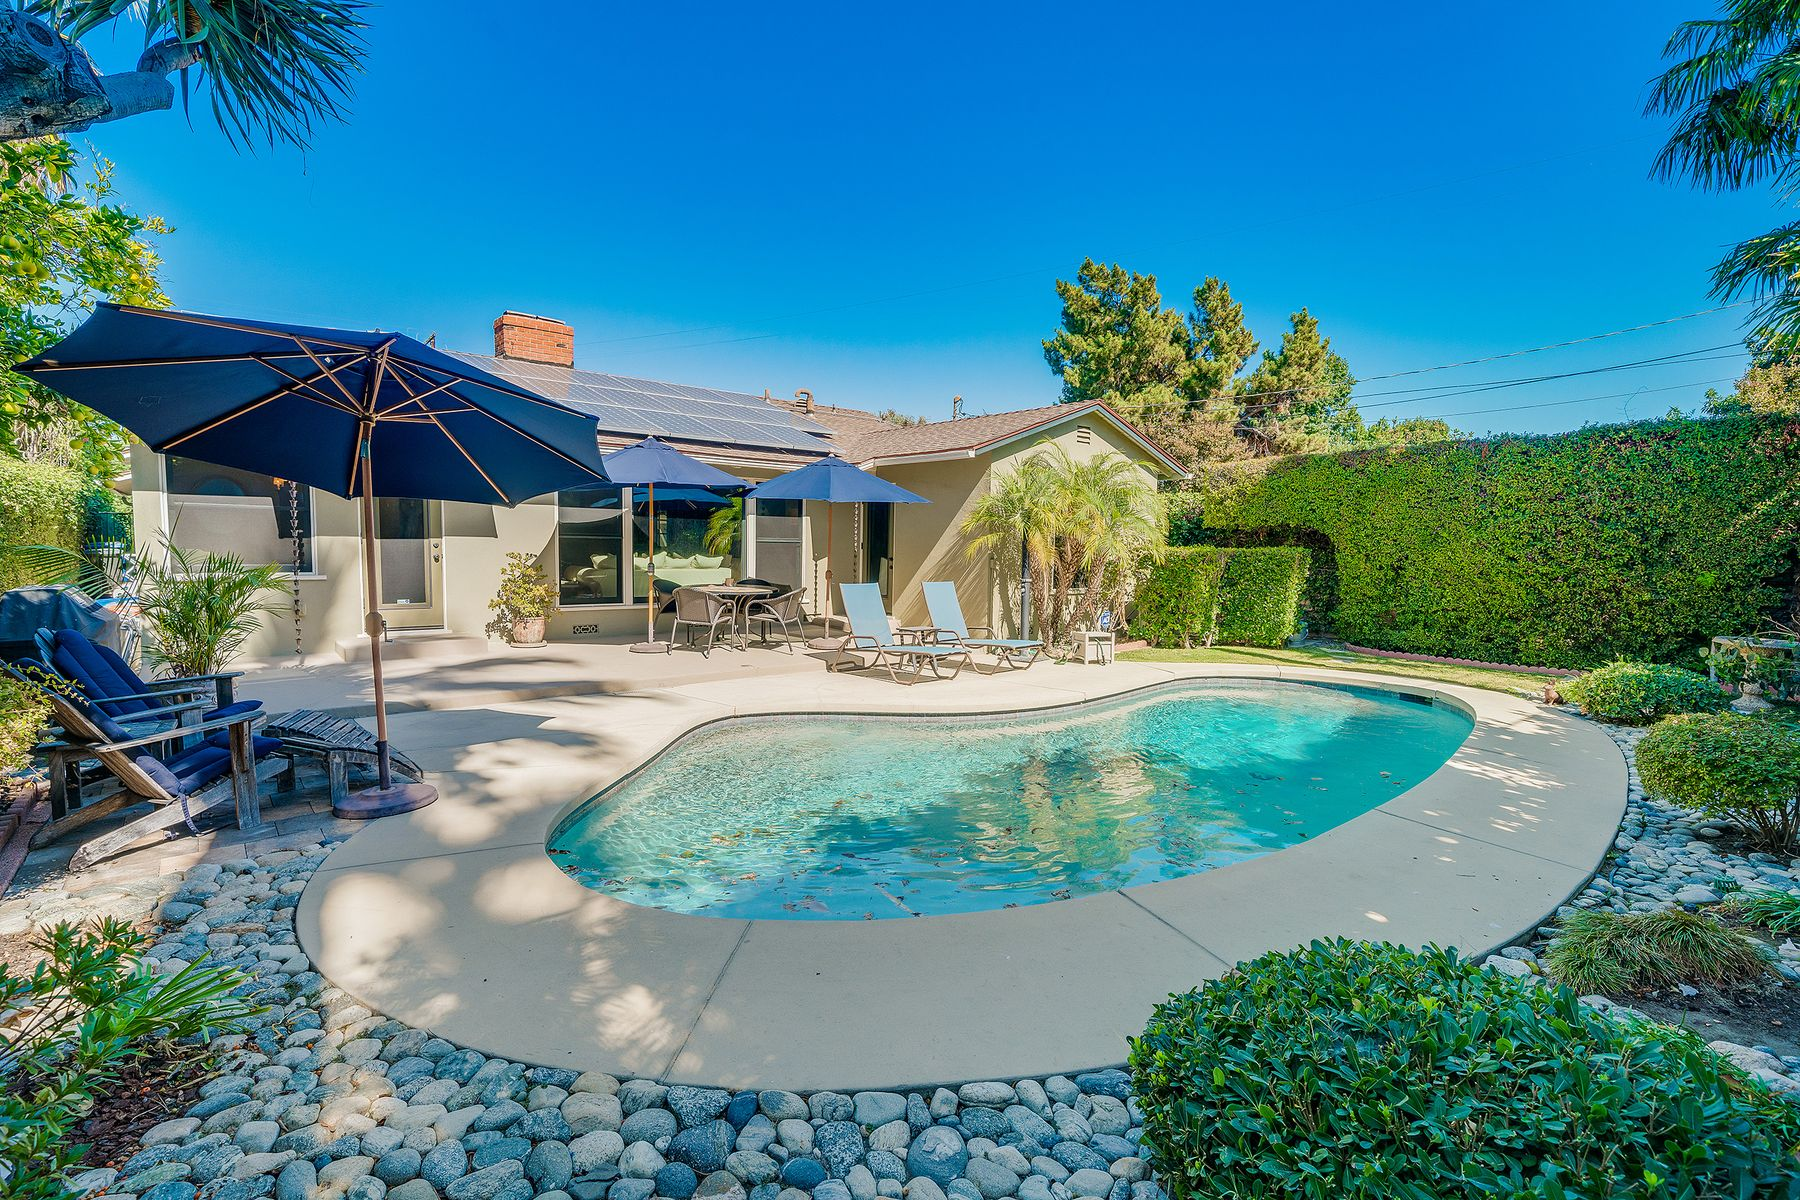 Single Family Homes for Sale at Pristine Mellenthin Pool House 13440 Albers Street Sherman Oaks, California 91401 United States